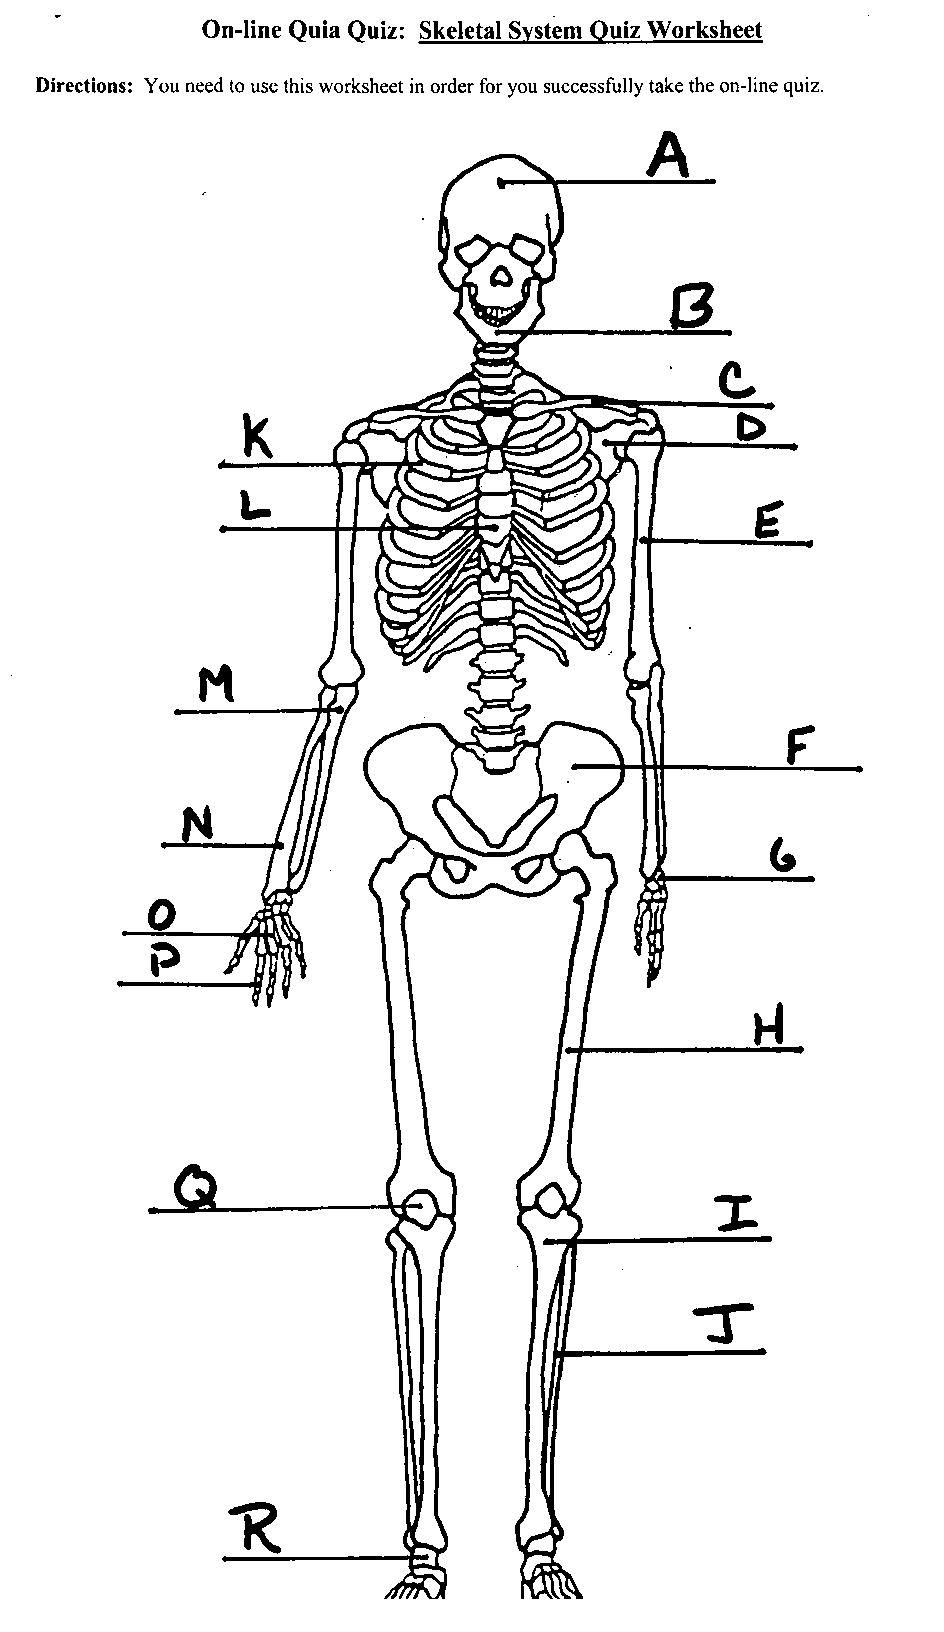 hight resolution of unlabeled diagram of the human skeleton unlabeled diagram of the human skeleton human bone structure